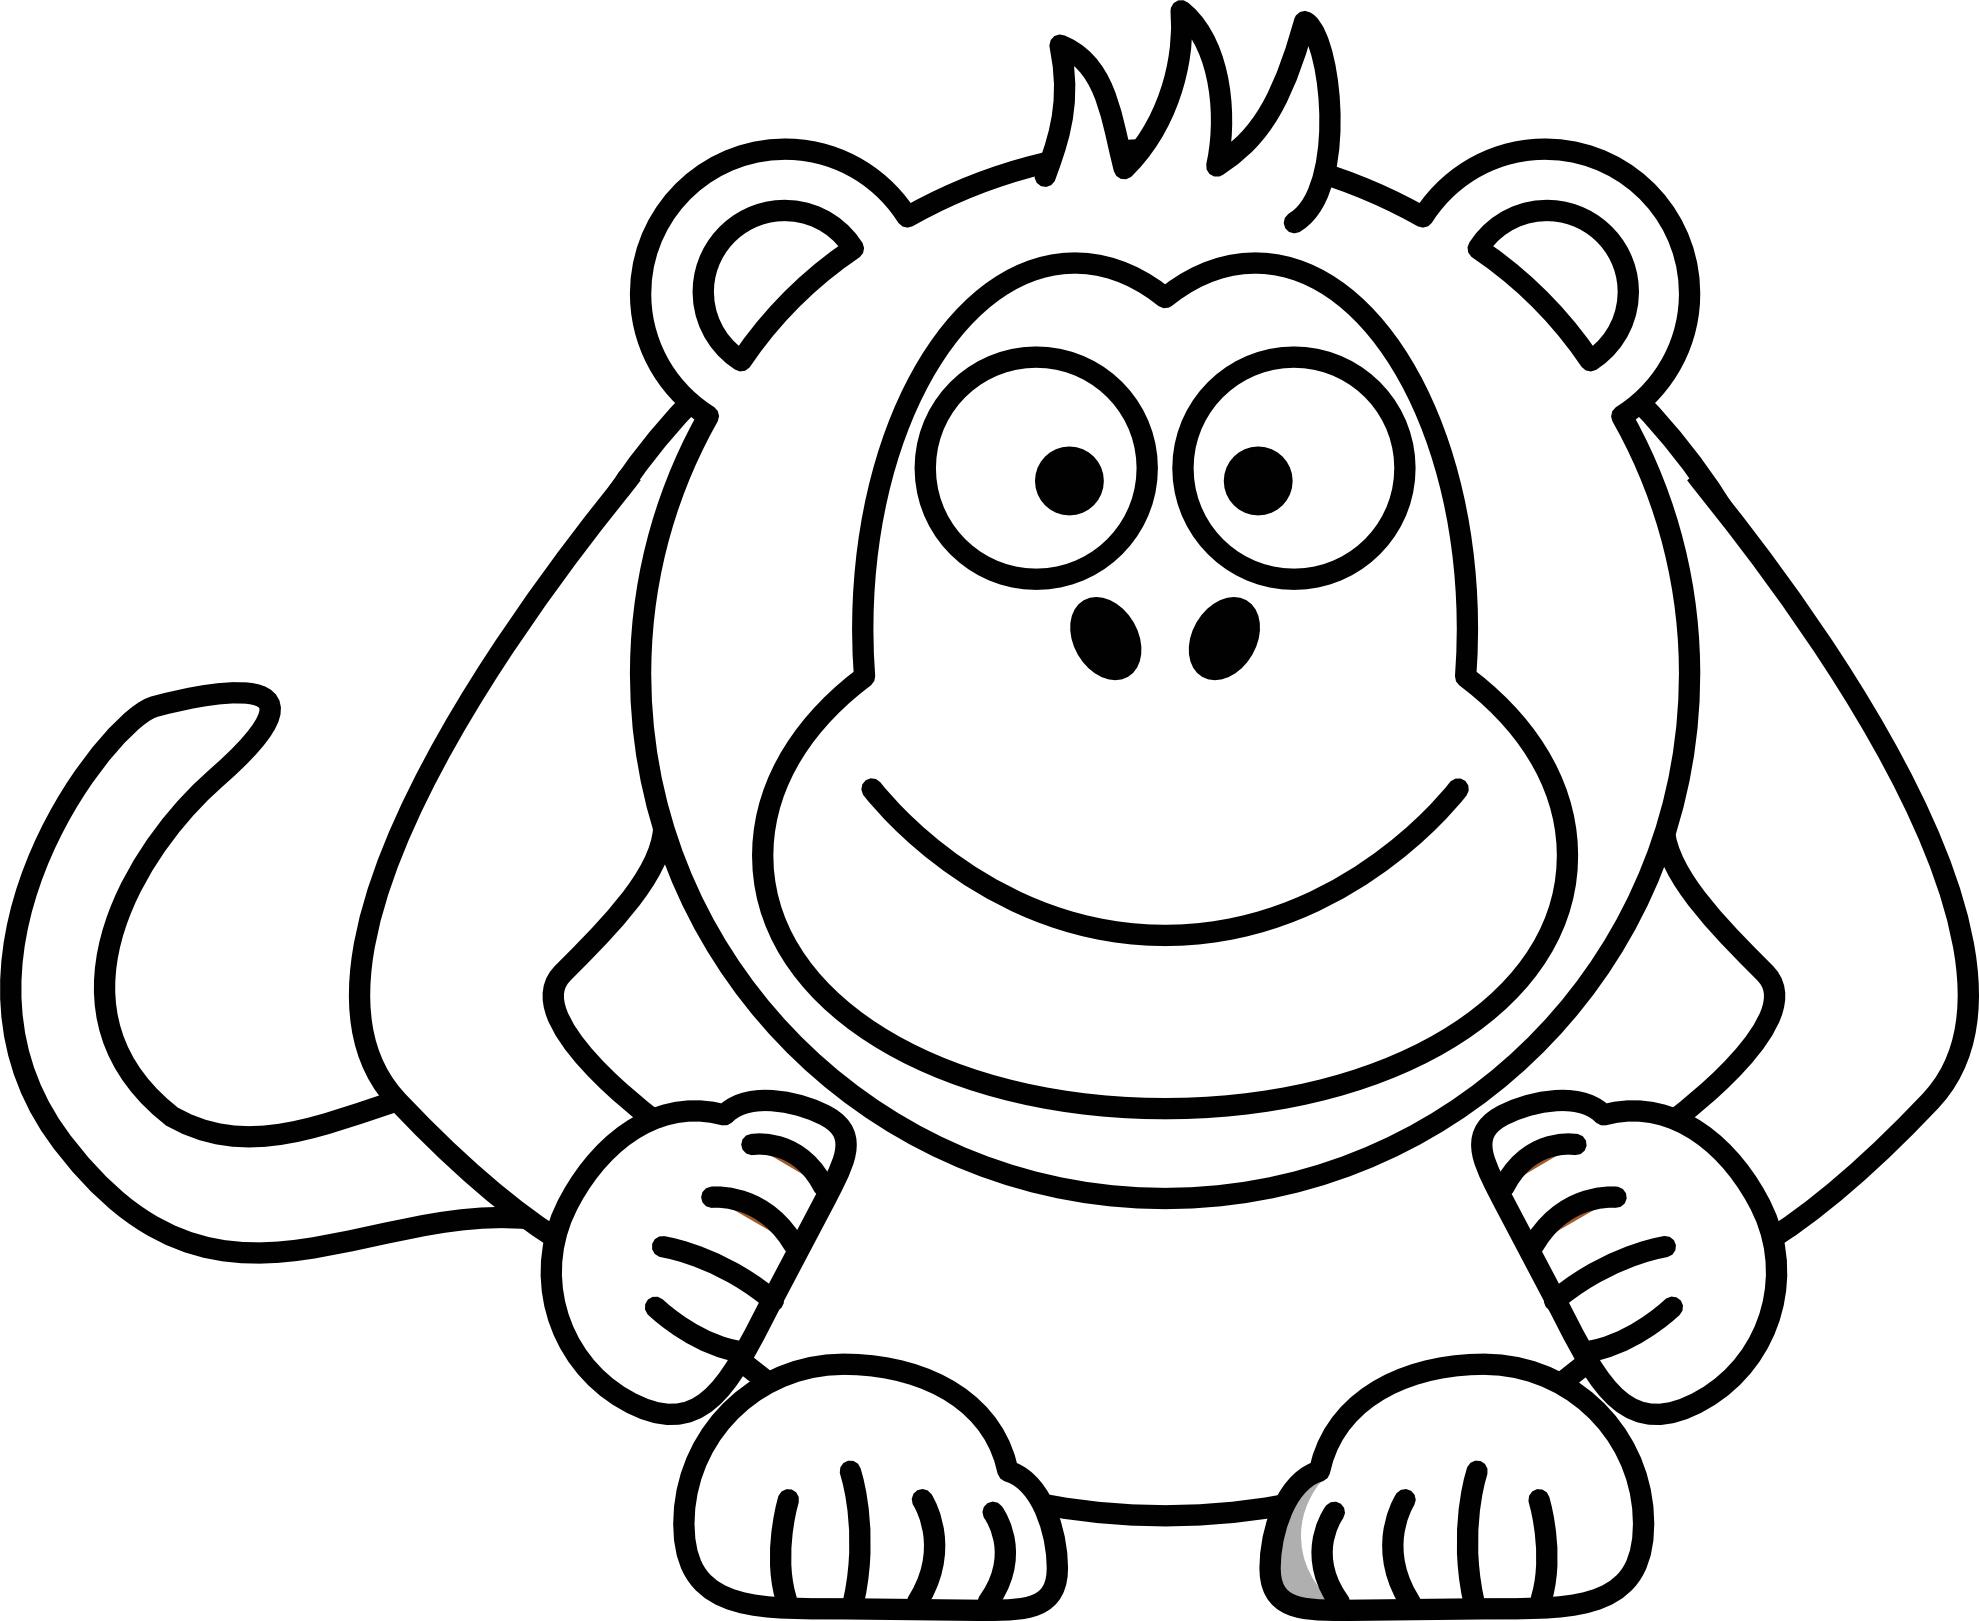 Cute book clipart black and white clip art transparent stock Free Picture Cartoon Monkey, Download Free Clip Art, Free Clip Art ... clip art transparent stock